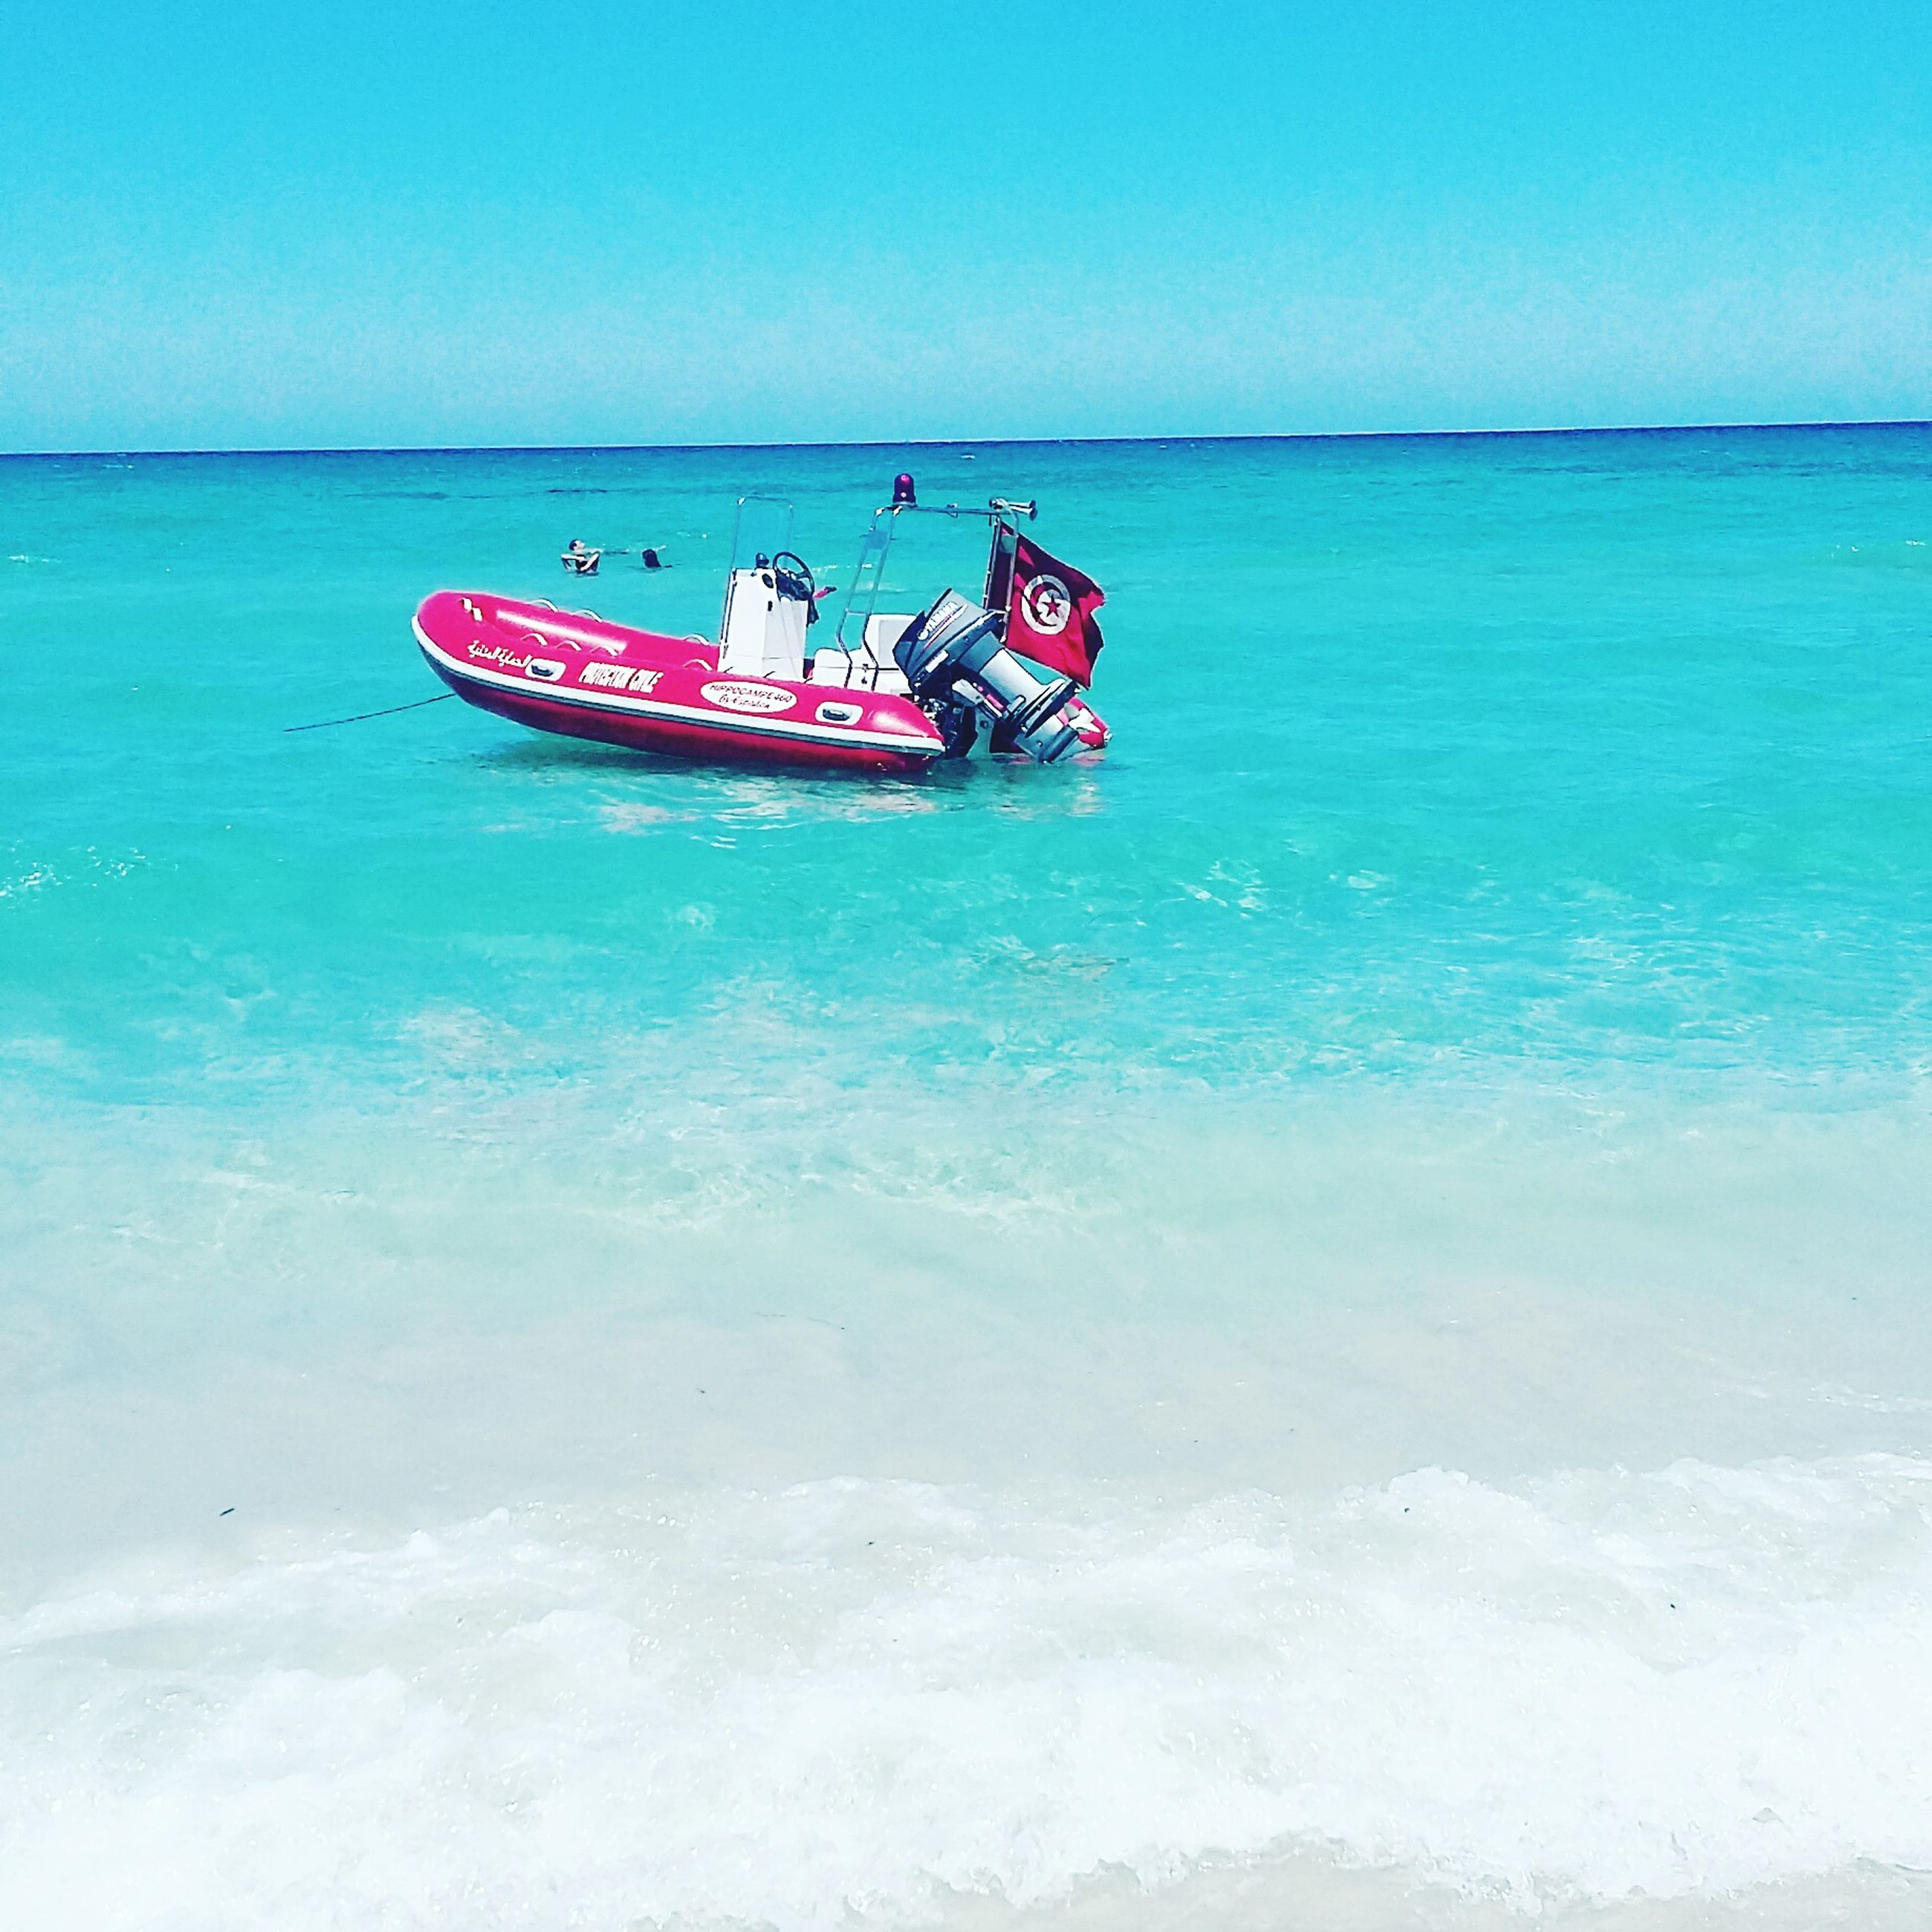 sea, water, nautical vessel, mode of transport, blue, horizon over water, boat, tranquility, nature, scenics, beauty in nature, vacations, tranquil scene, day, leisure activity, sky, outdoors, rippled, idyllic, enjoyment, fun, tourism, lifestyles, non-urban scene, ocean, travel destinations, remote